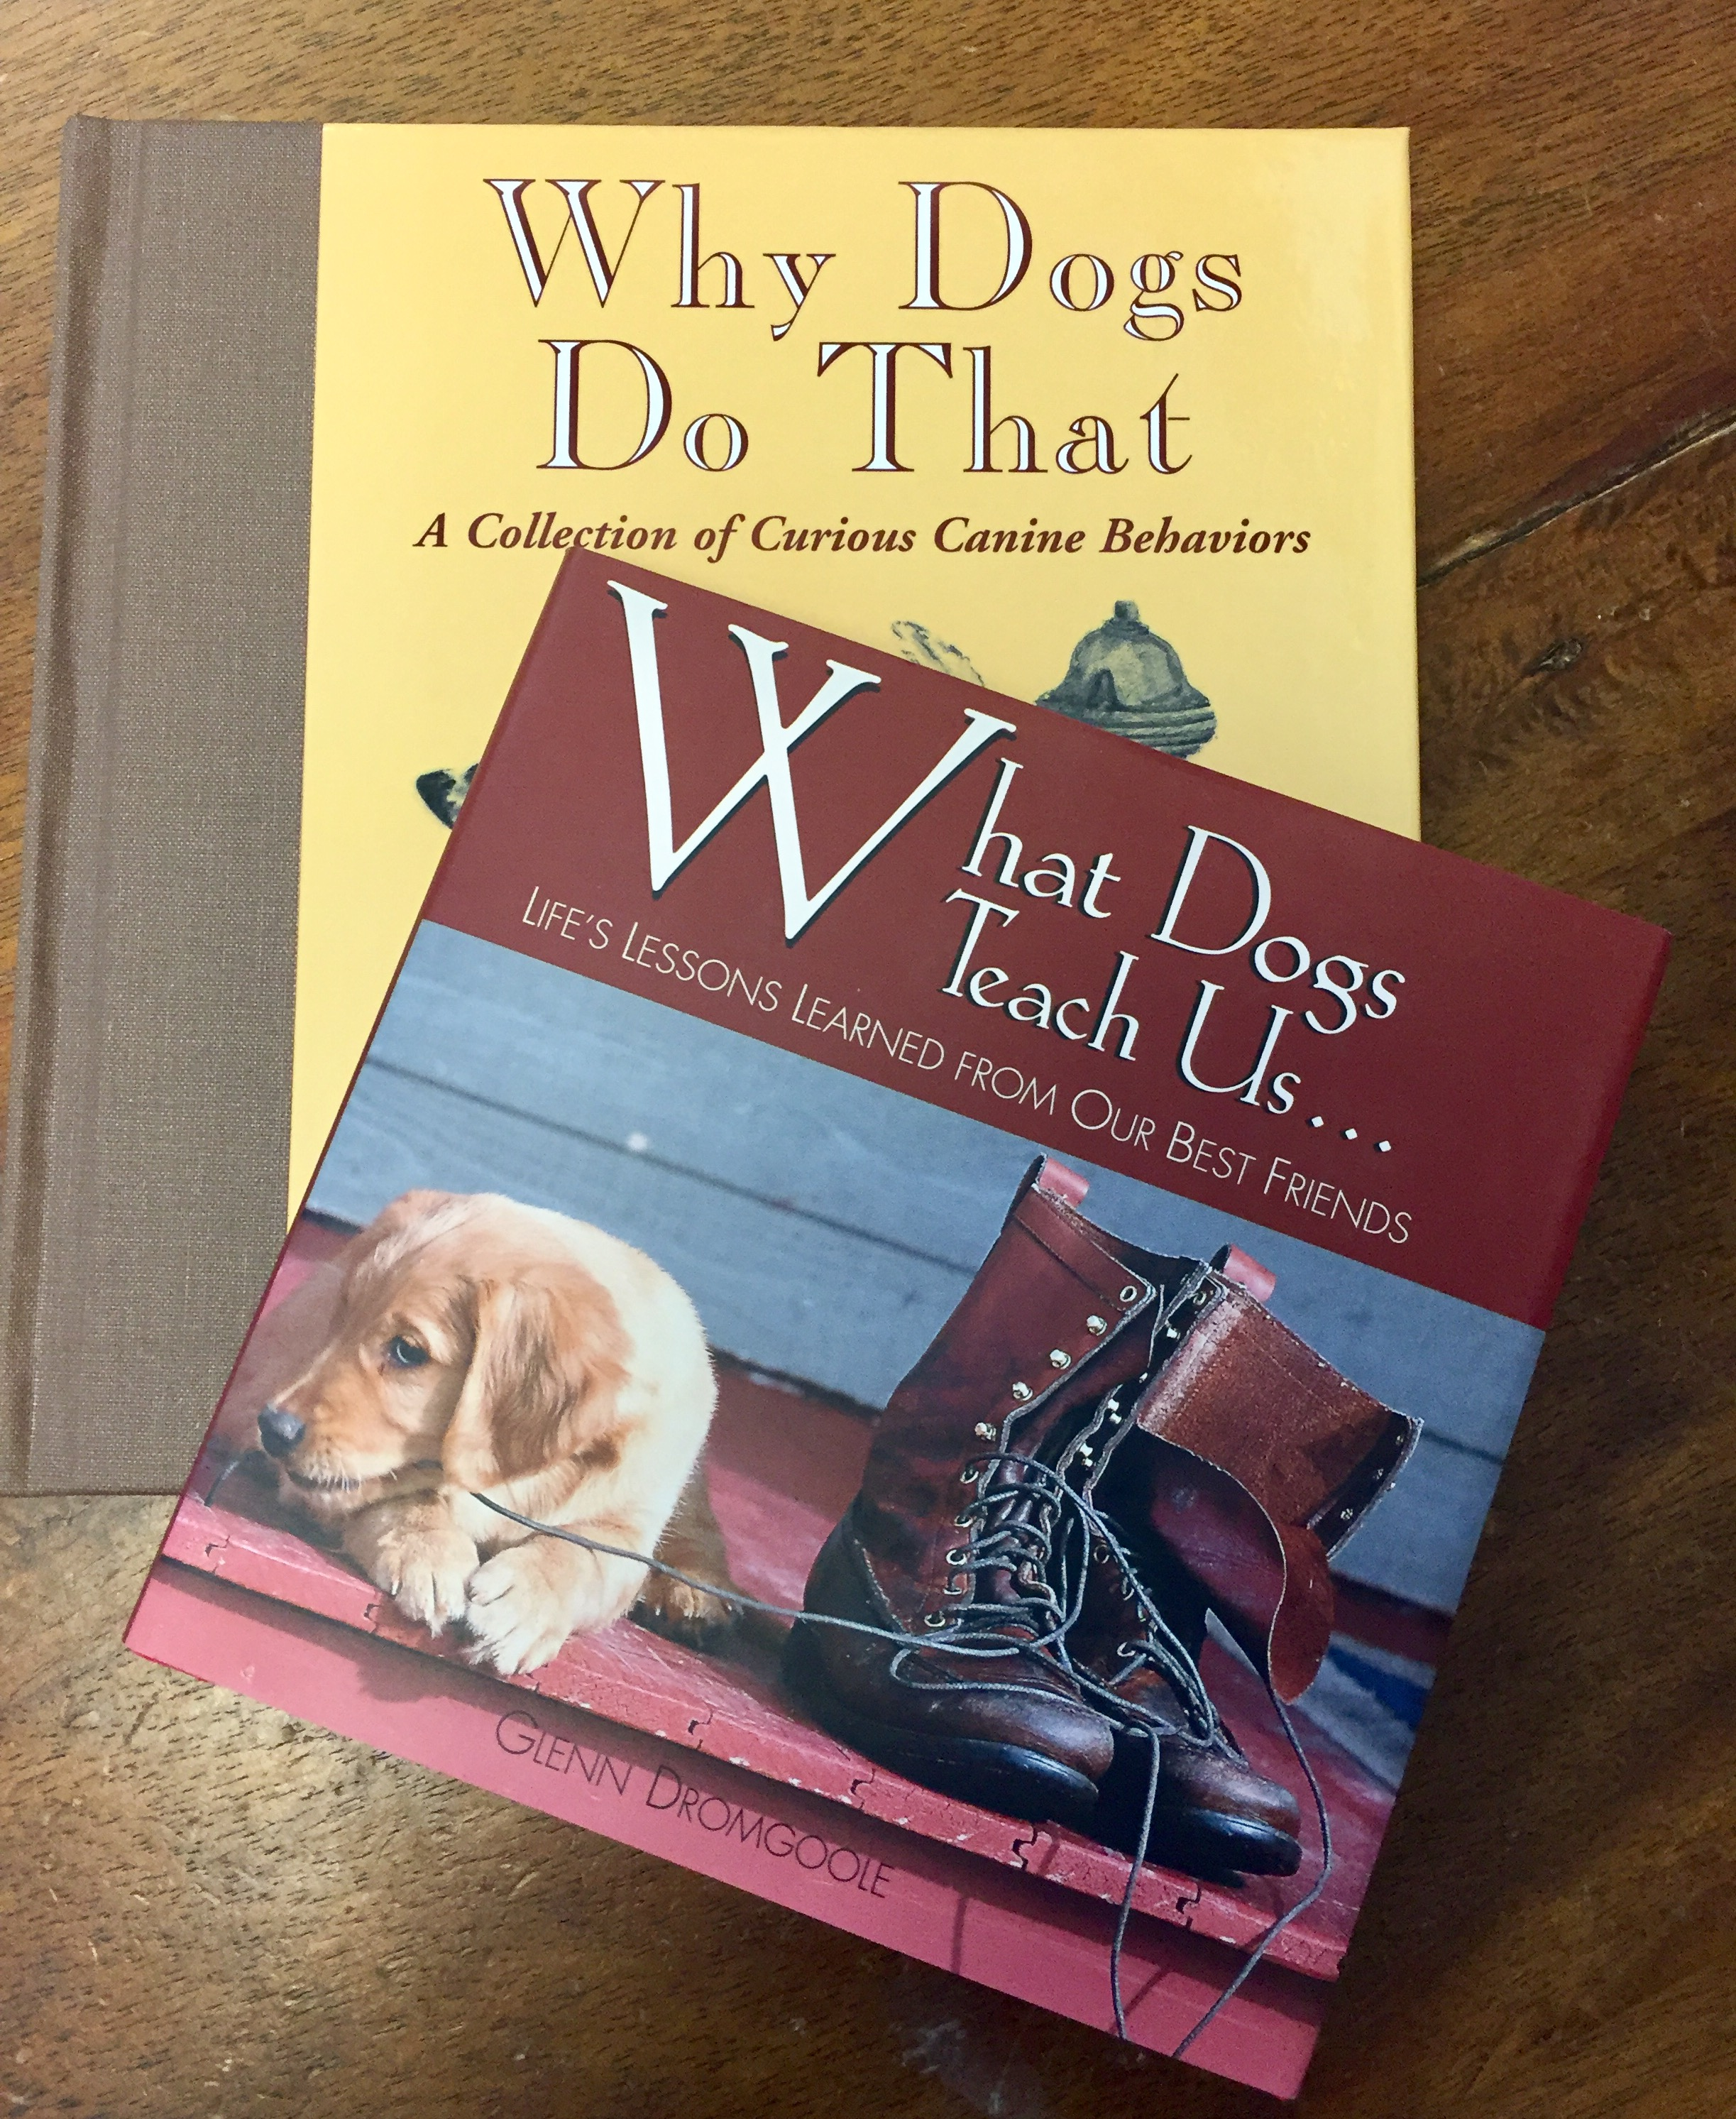 We also have dog books!